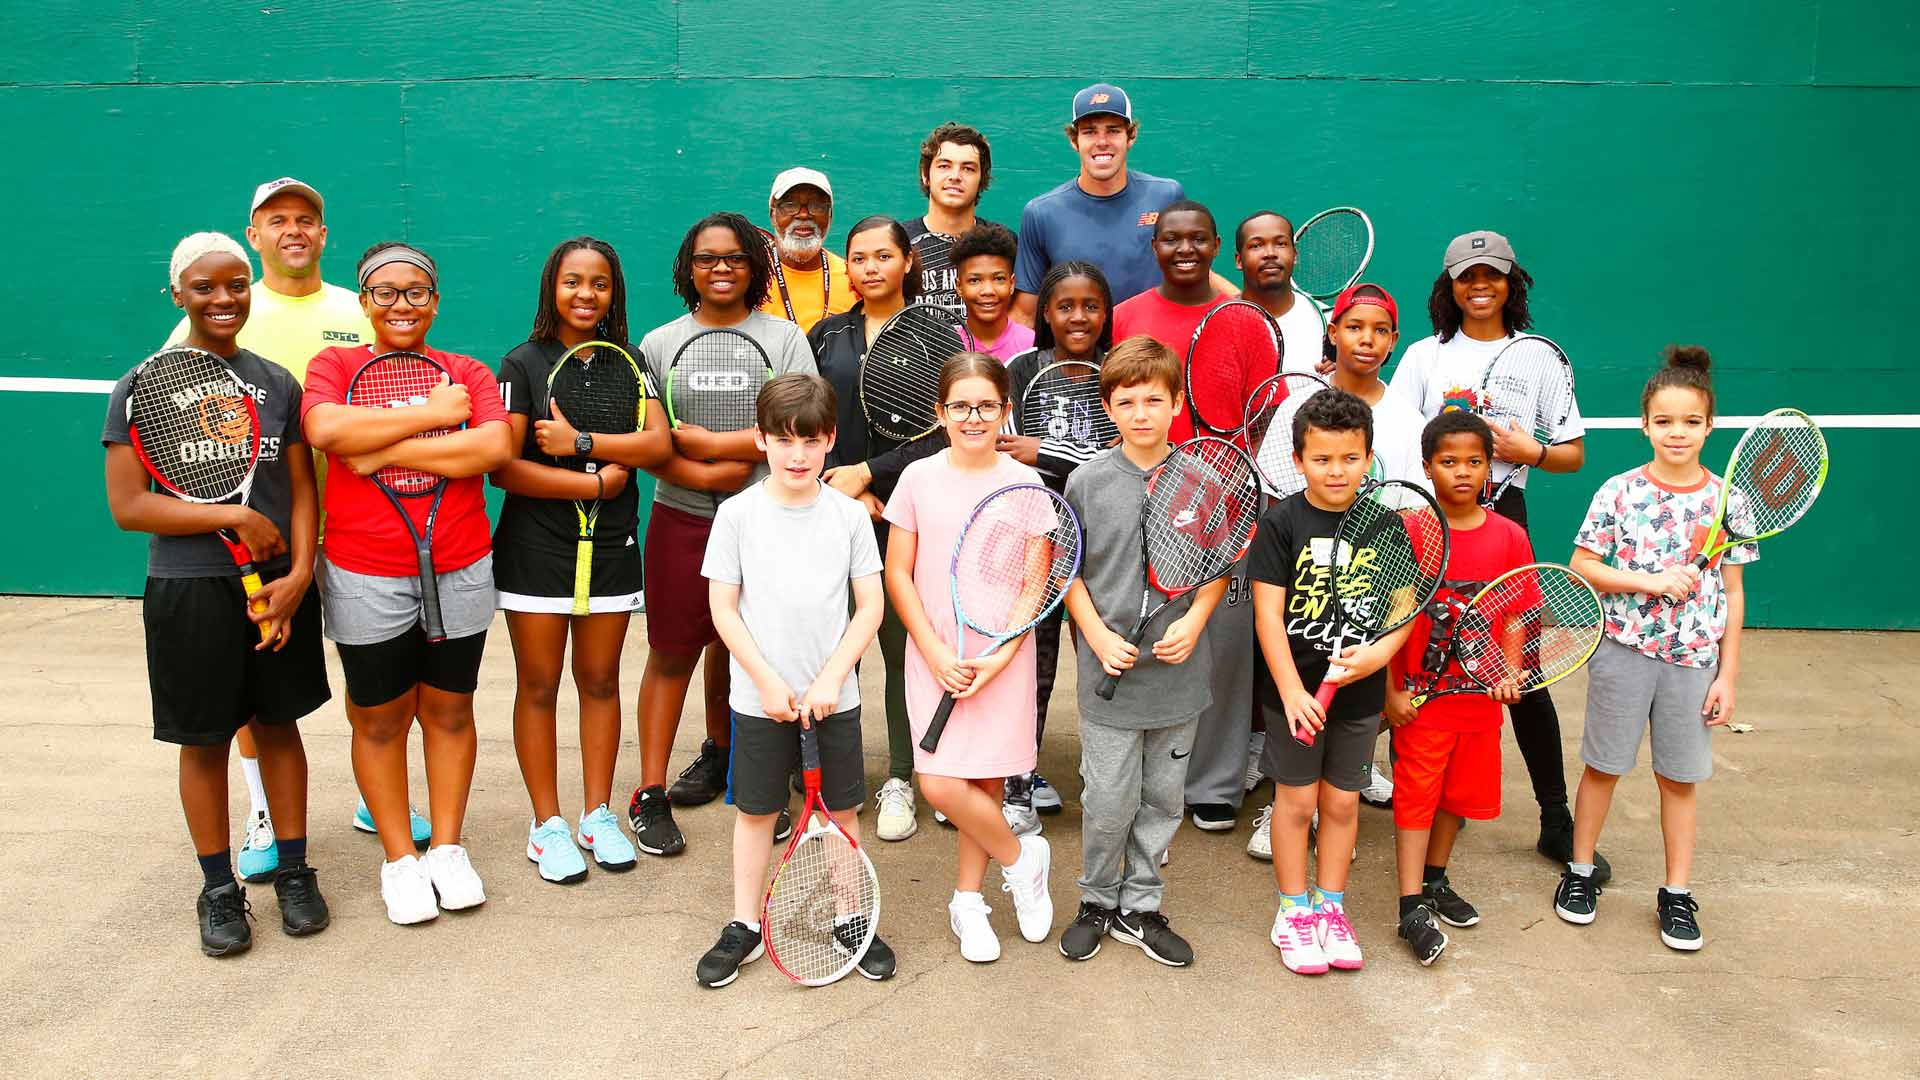 Taylor Fritz and Reilly Opelka helping the community in Houston